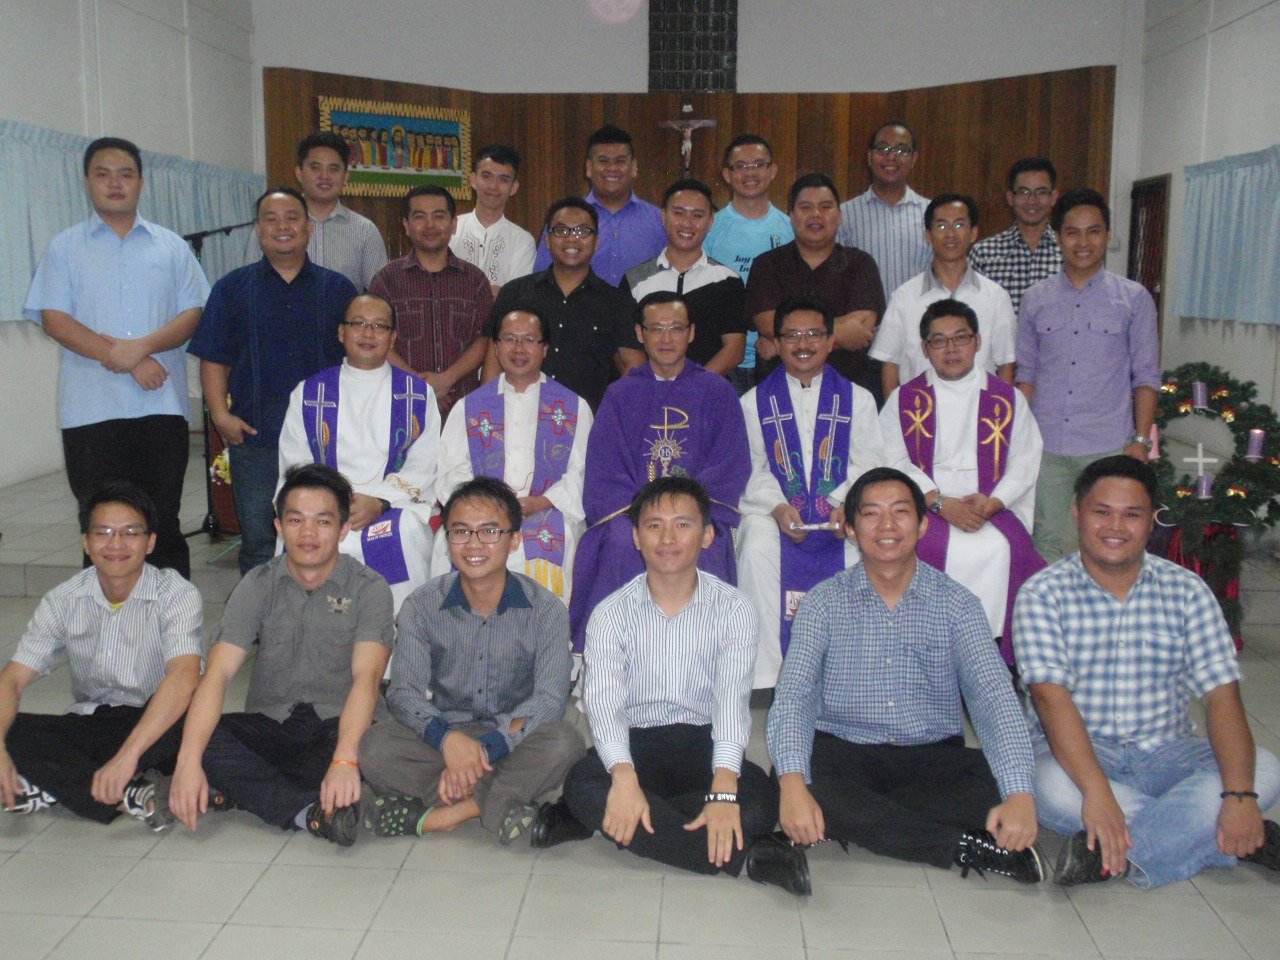 The IY students and aspirants pose with their formators after the Mass.